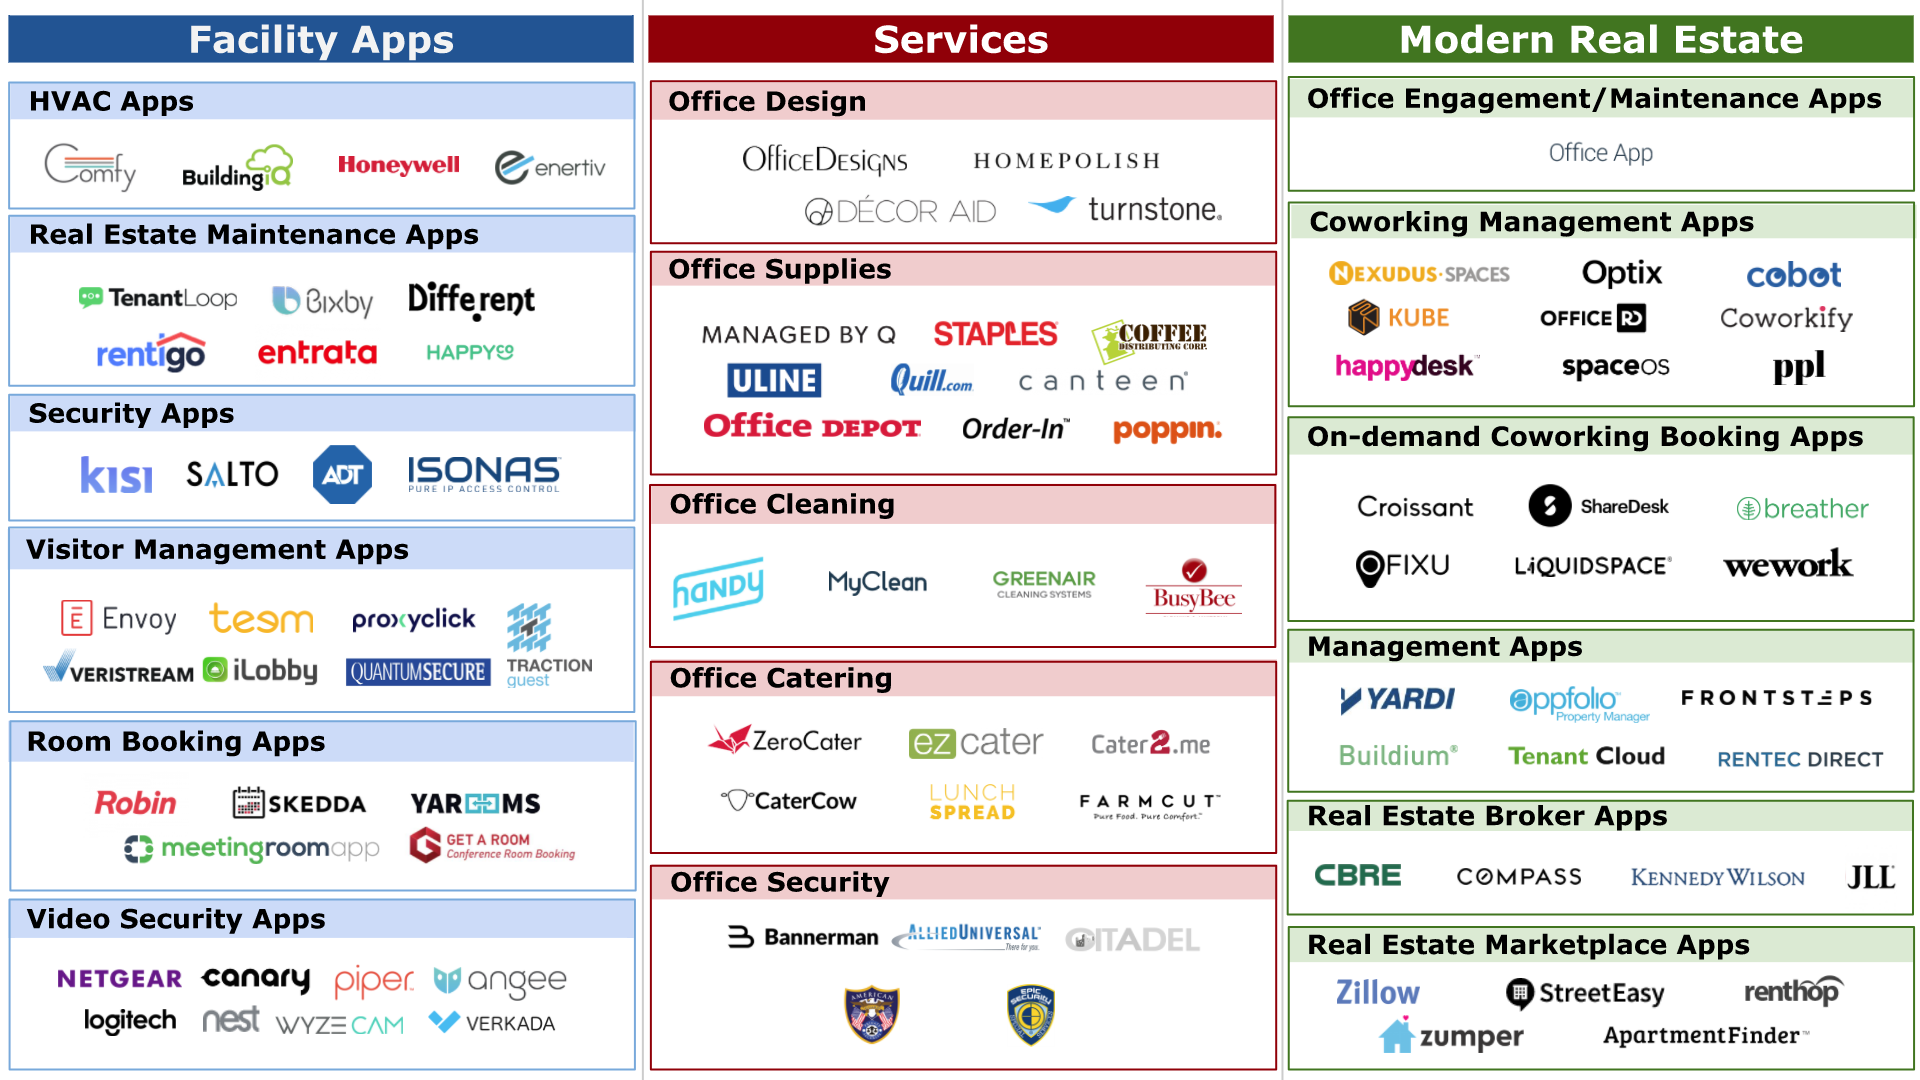 Overview of Real Estate Landscape